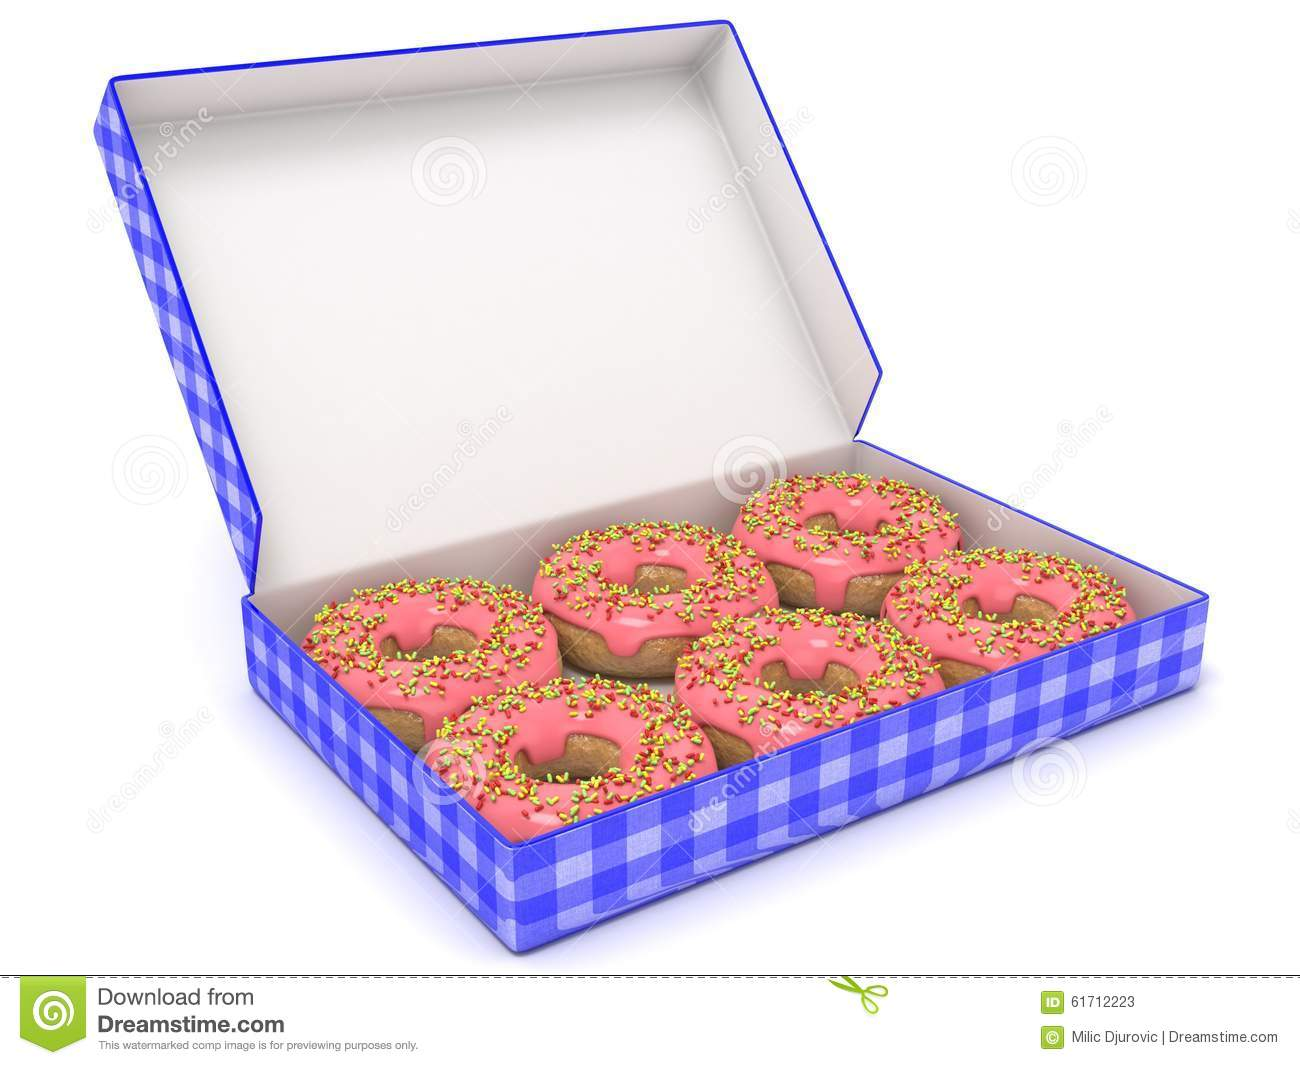 six chocolate donuts in blue box  side view  3d render